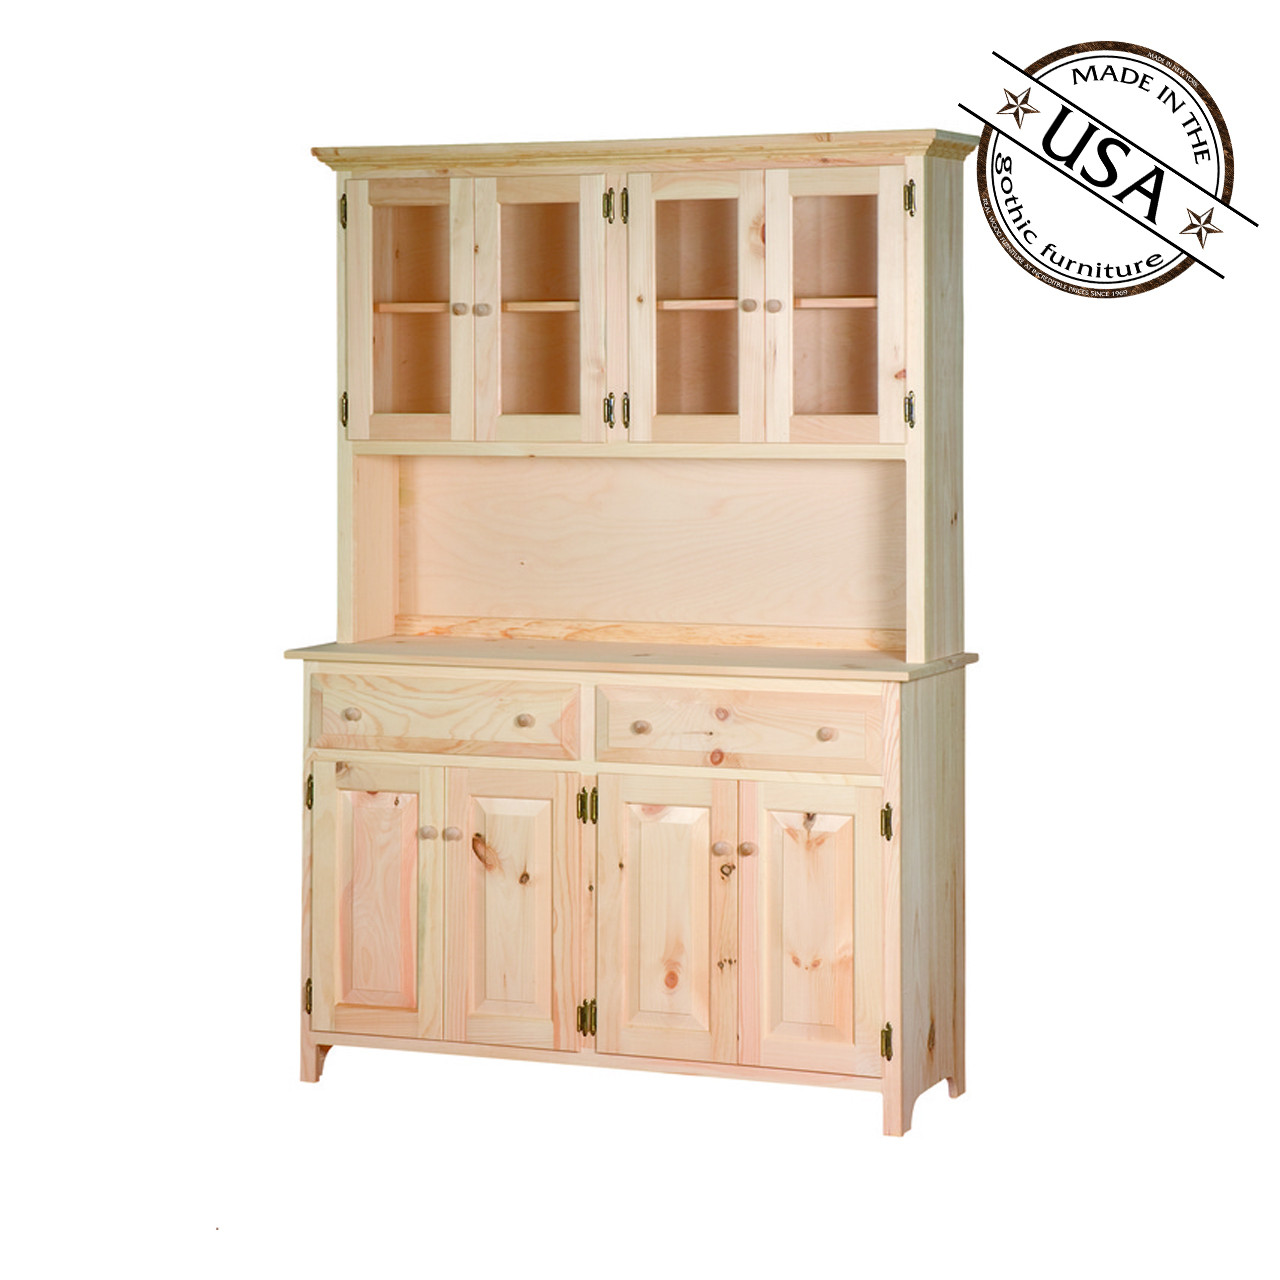 Awe Inspiring Large Kitchen Buffet Server And Hutch Download Free Architecture Designs Scobabritishbridgeorg